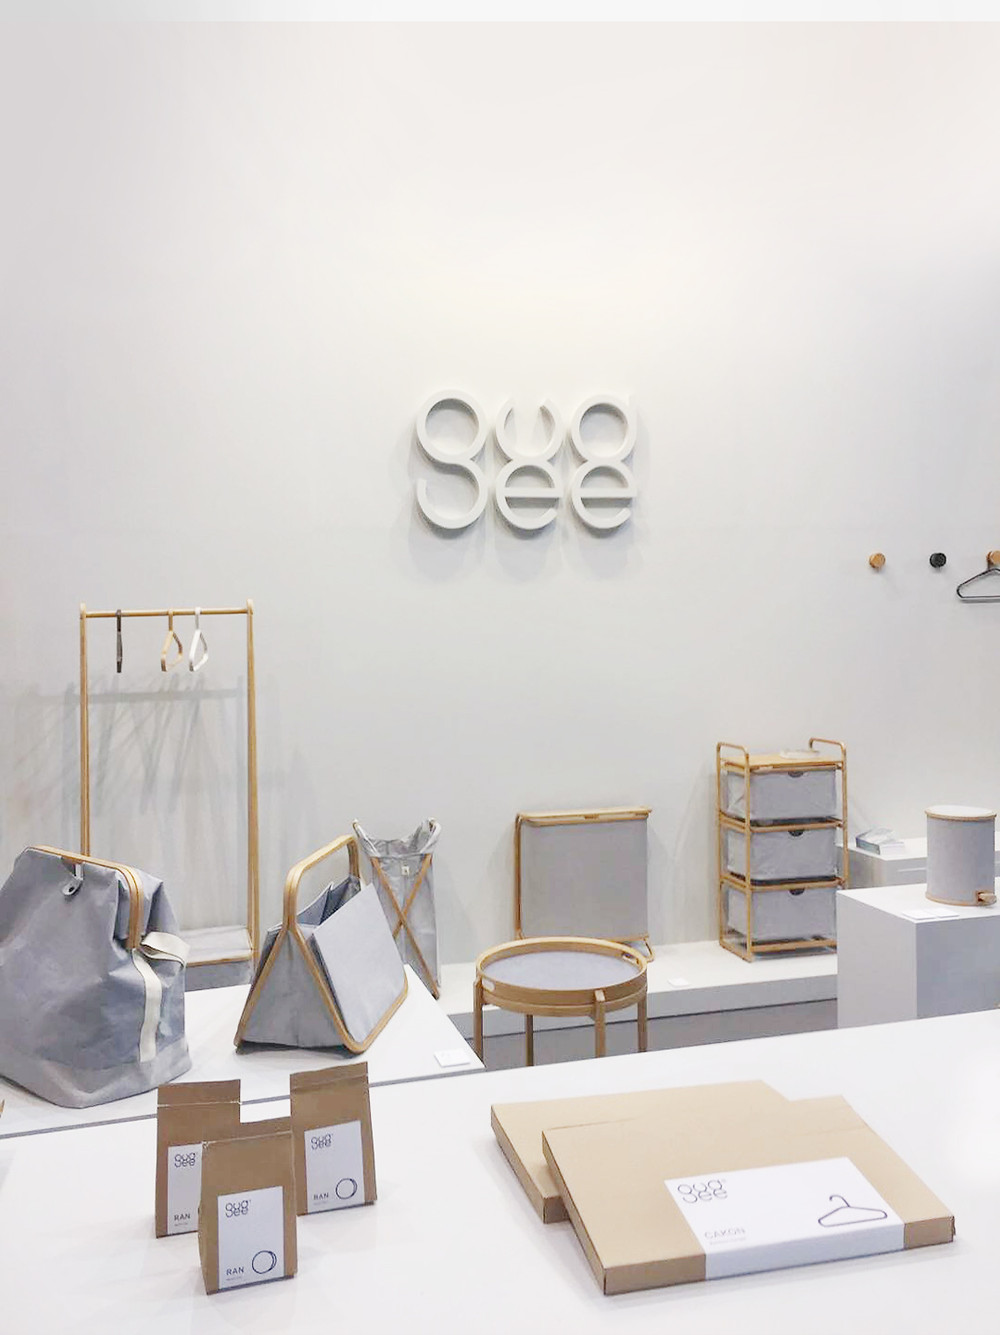 Gudee Blog-packages logo-Gudee unveils new collection at Ambiente 2018